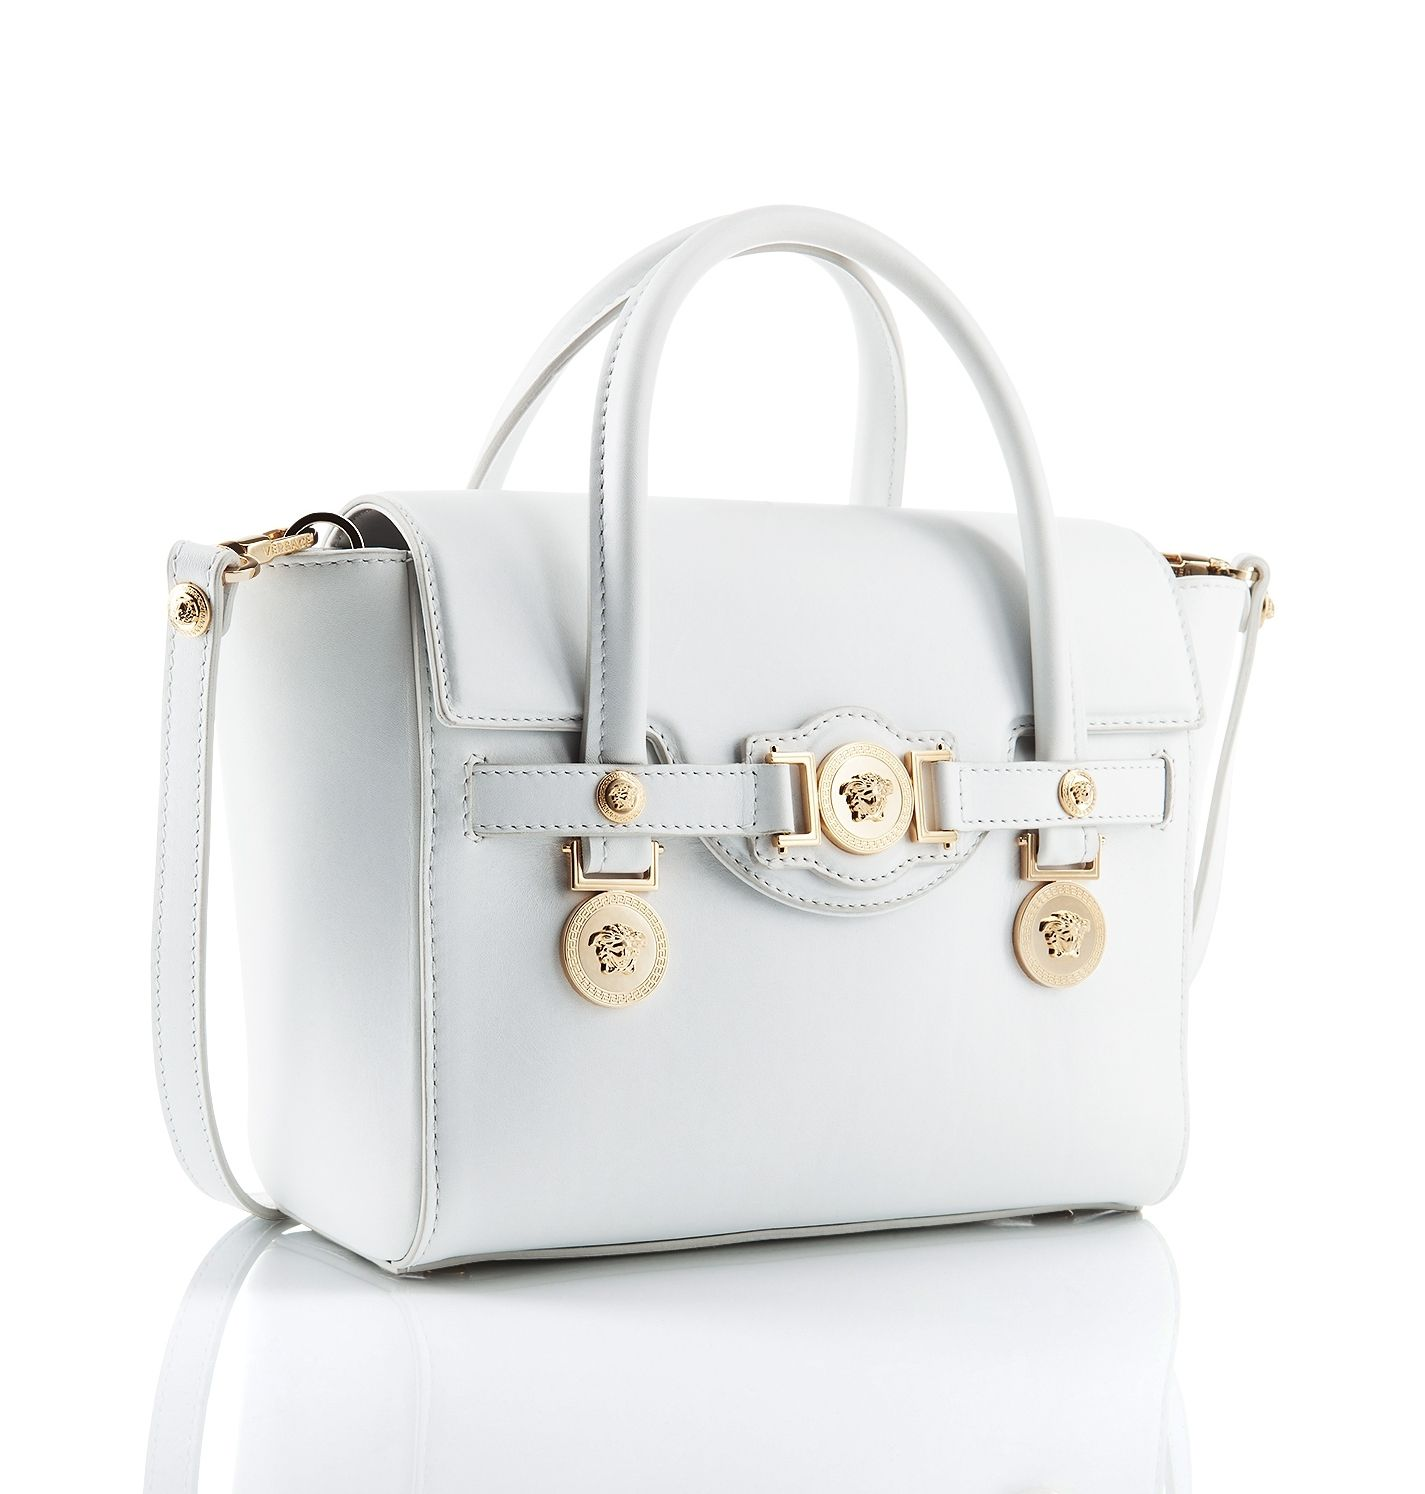 eb6c193337 The small Versace Signature bag.  VersaceSignatureBag  Versace - Princess  Diana carried a similar Versace handbag